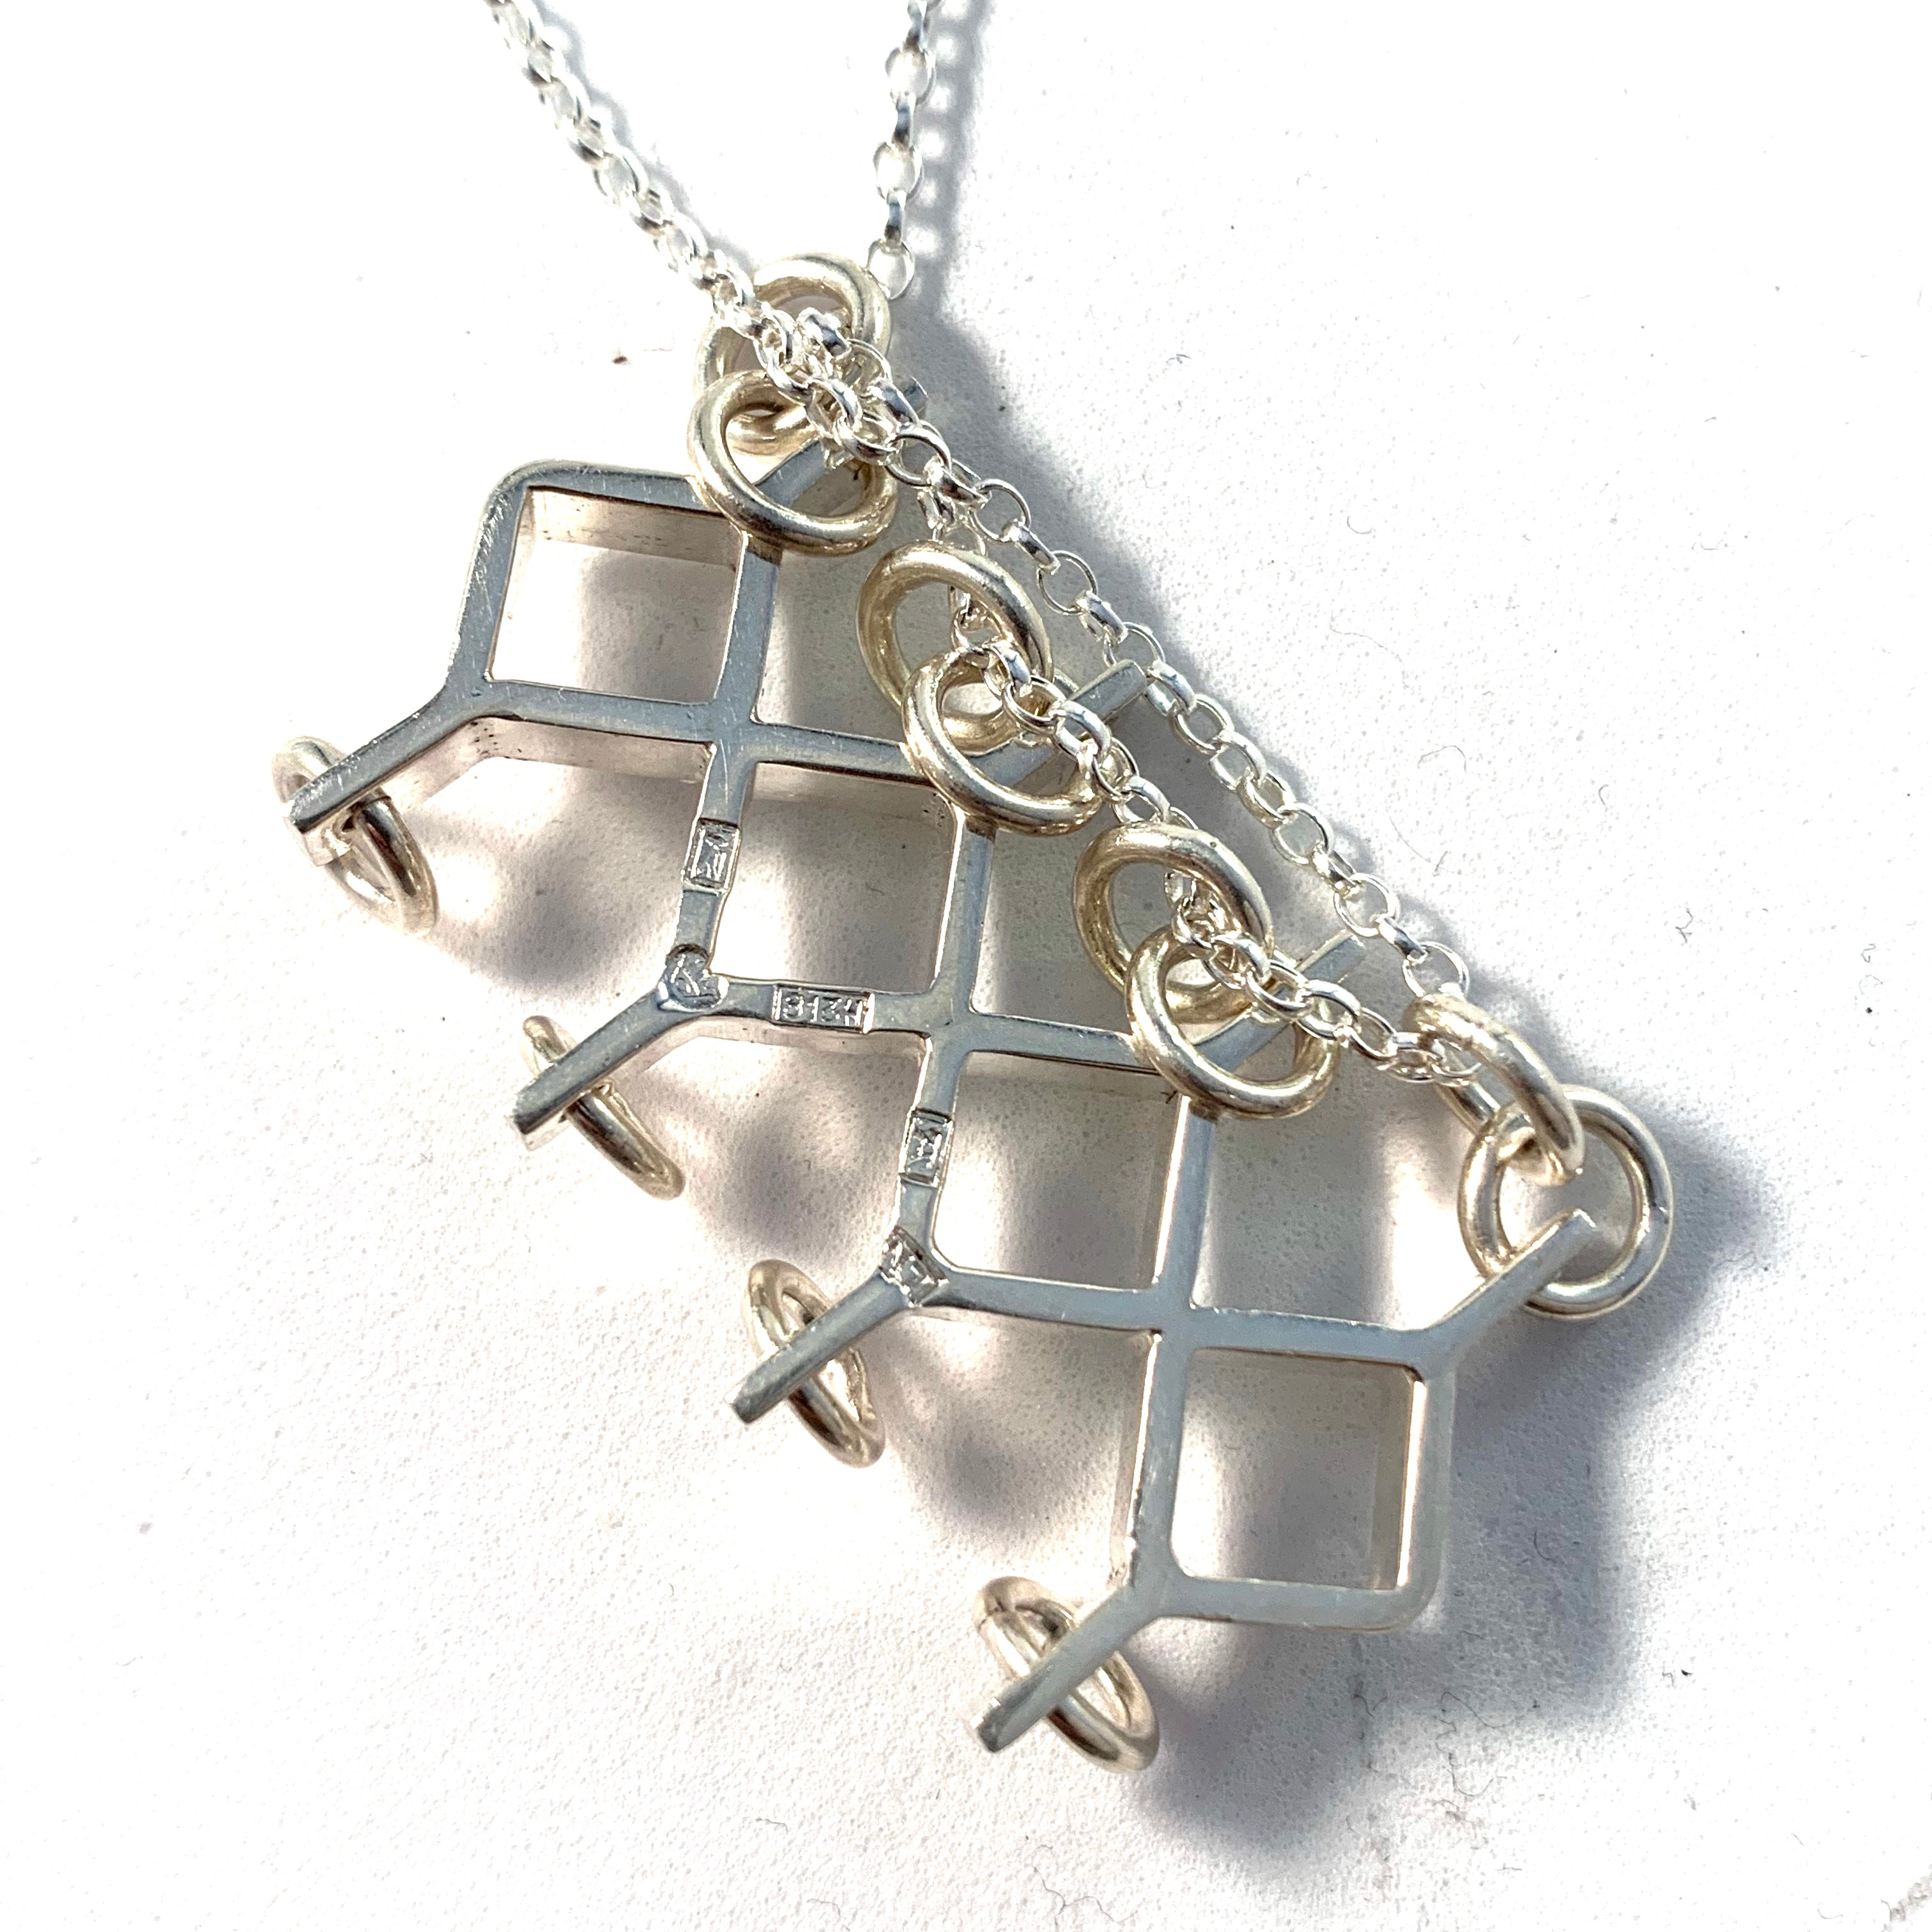 Jorma Laine for Kultateollisus, Finland 1966 Modernist Silver Pendant With A New Sterling Chain.